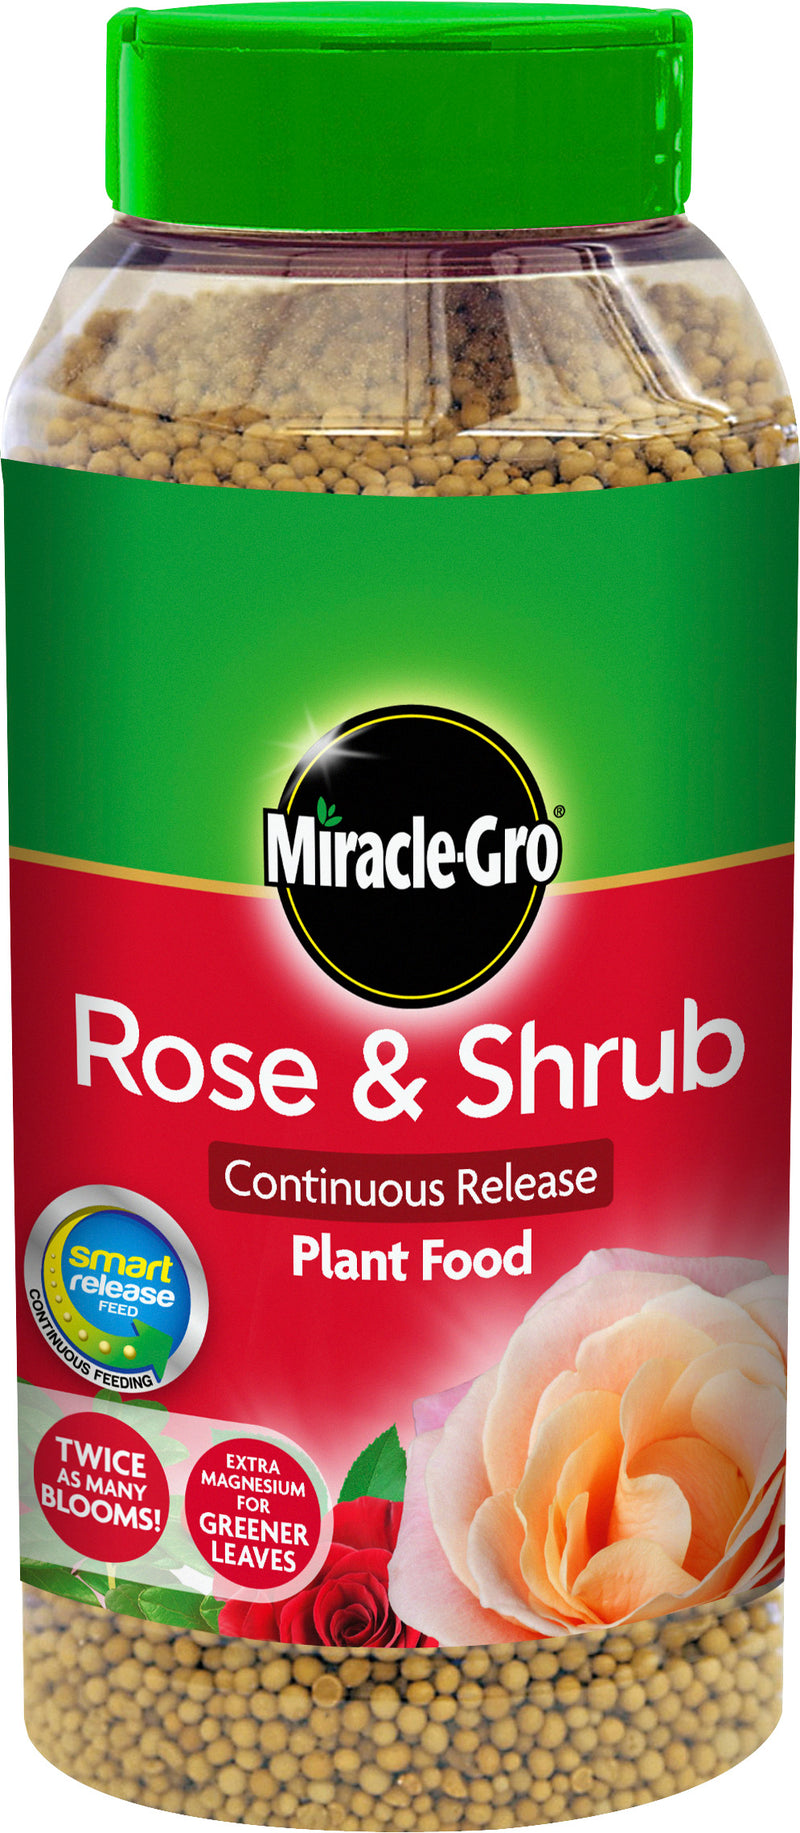 Miracle-Gro Rose and Shrub 1KG Shaker Jar